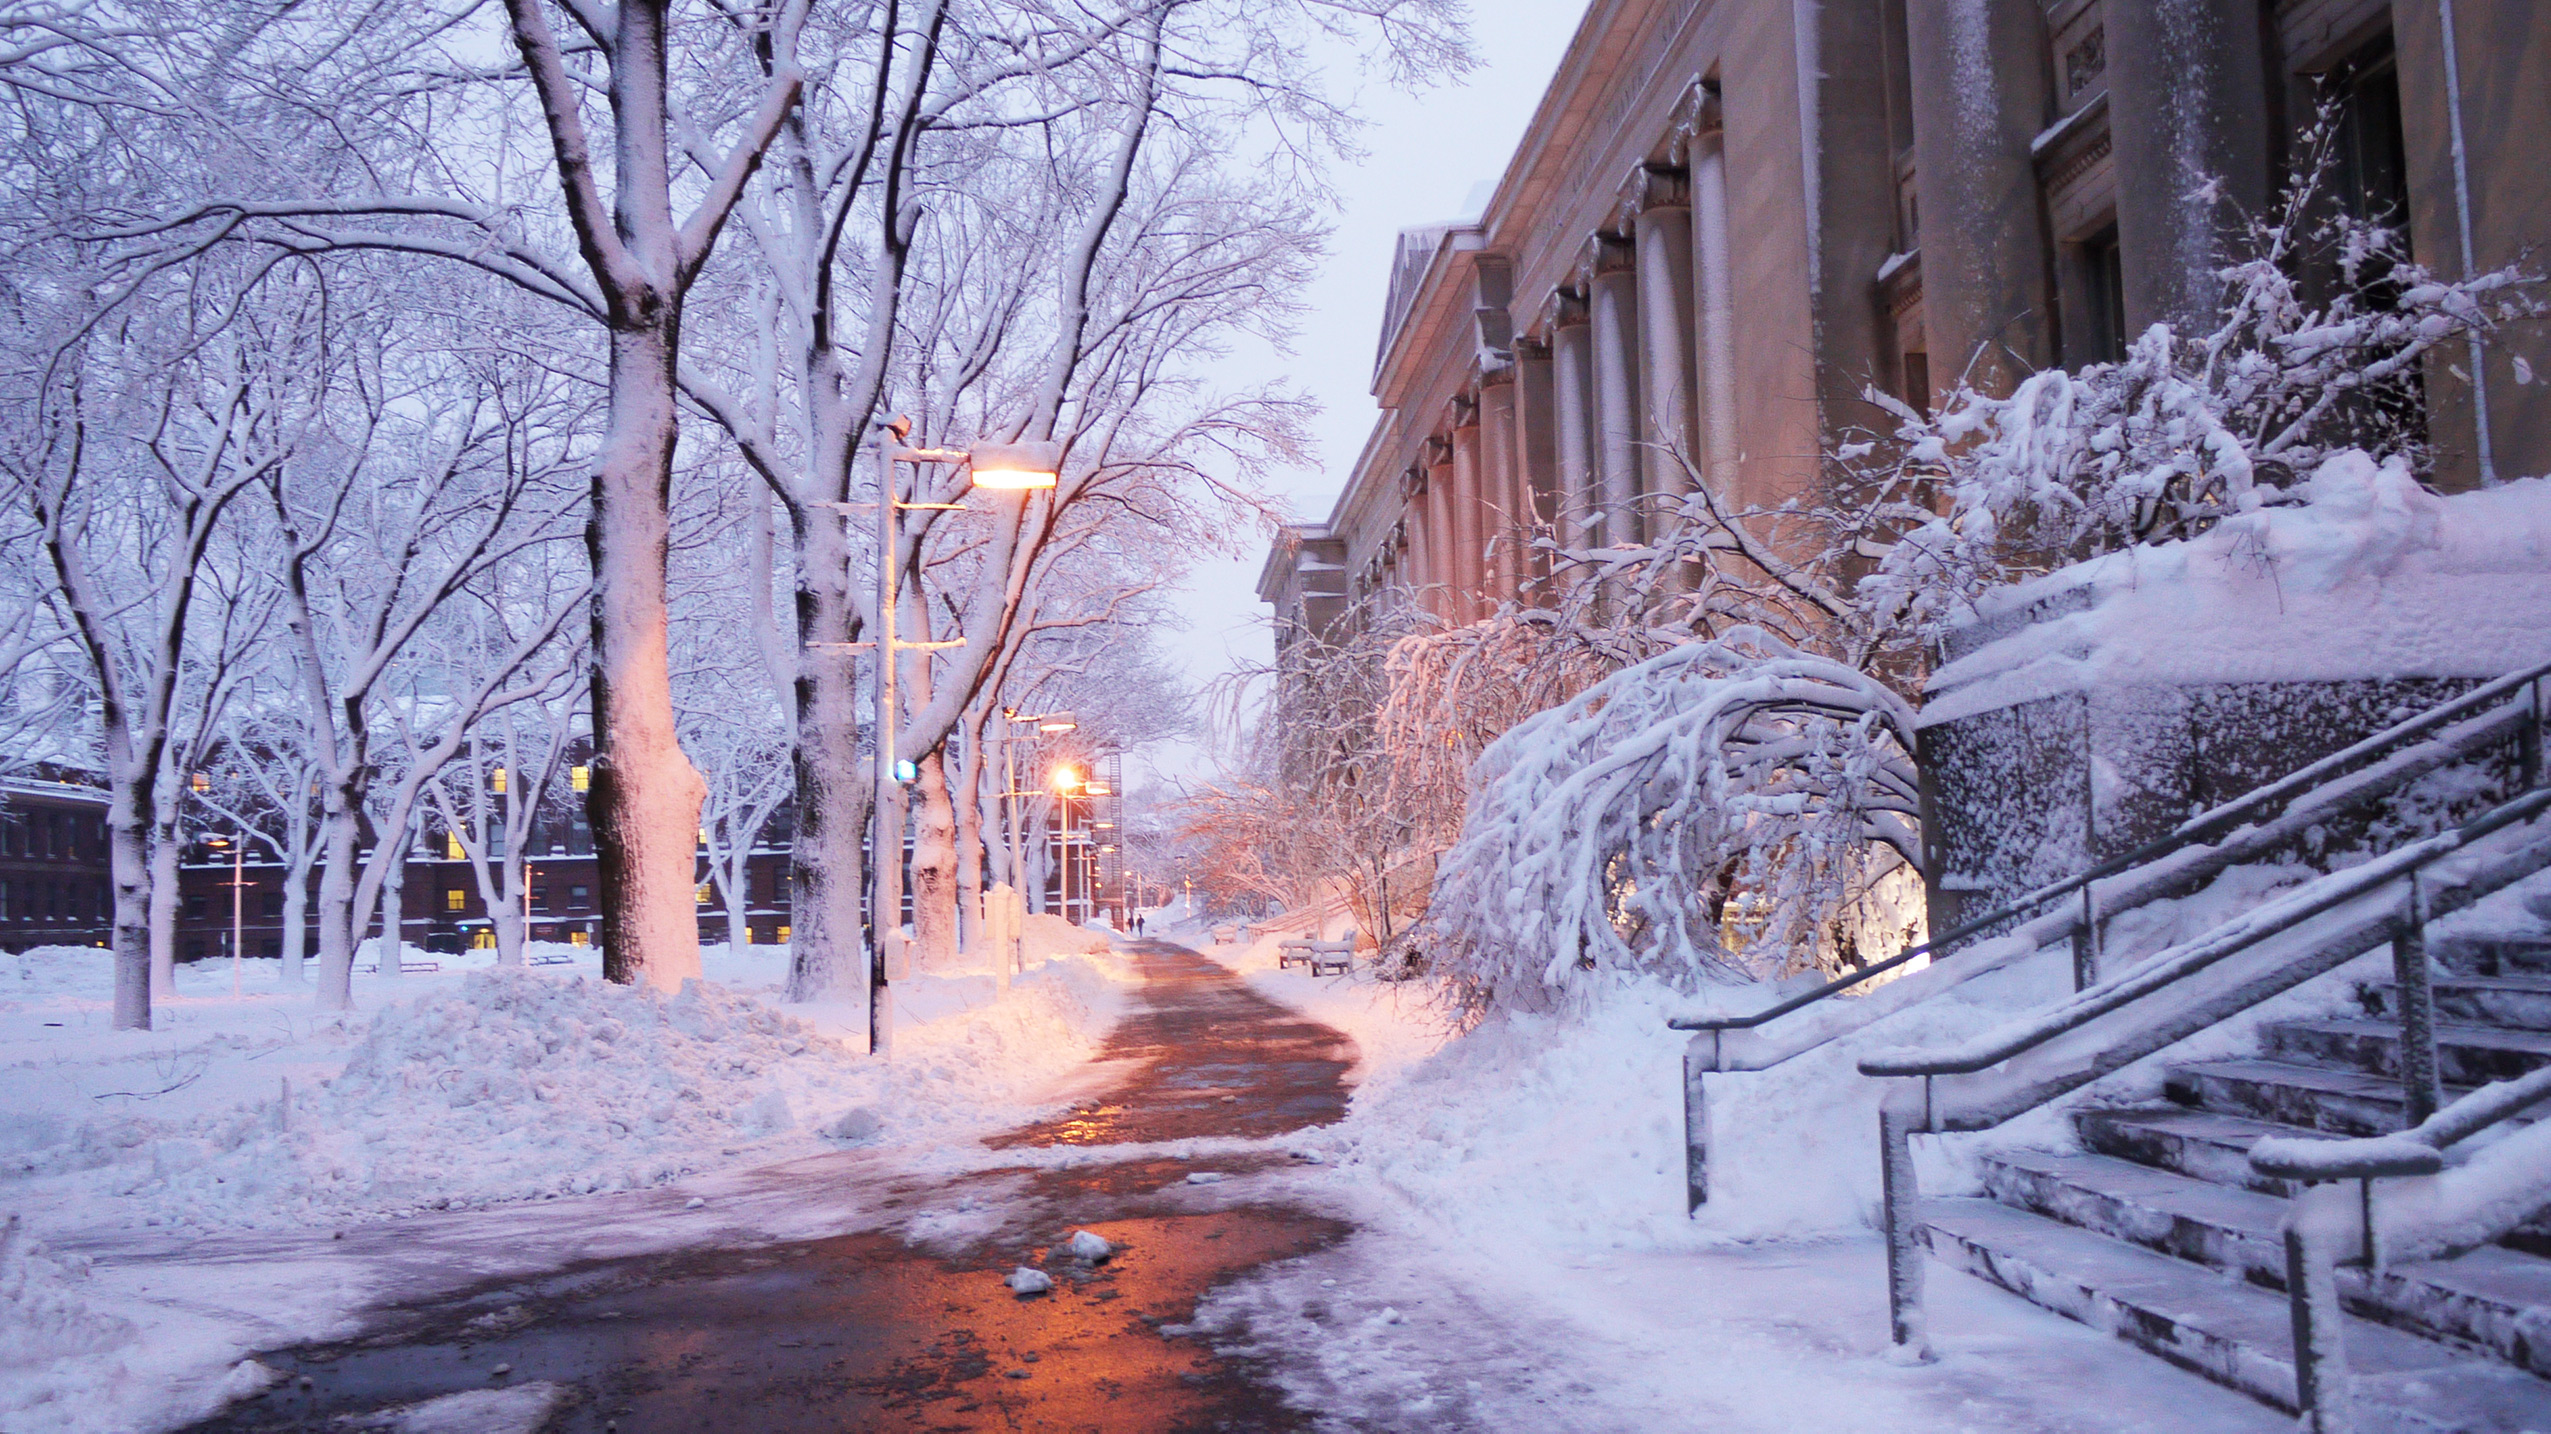 Snow on the HLS campus at twilight